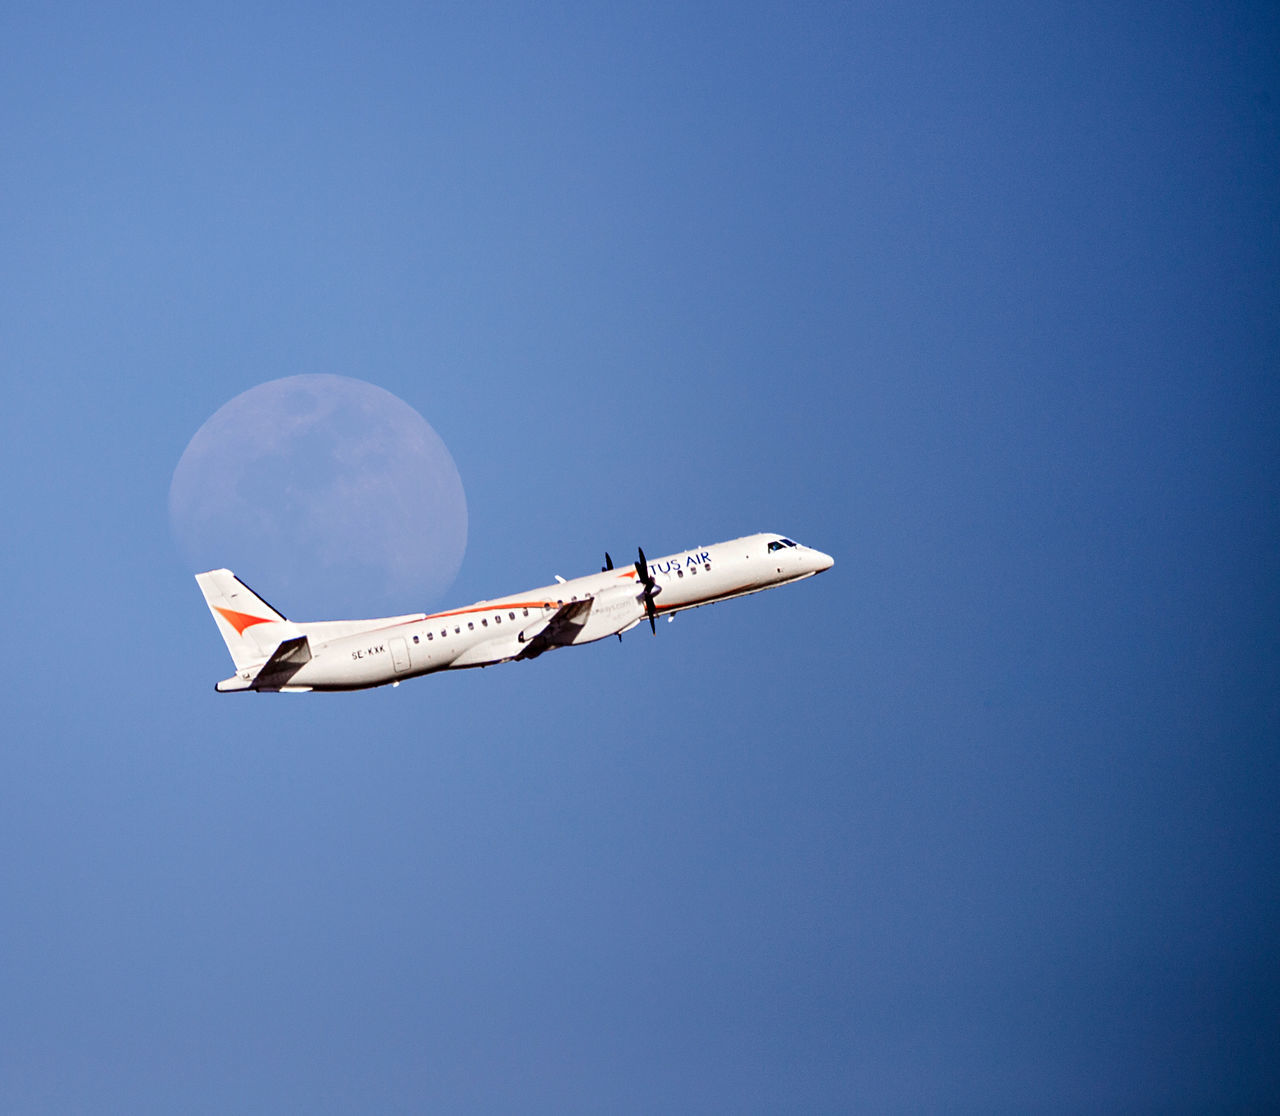 copy space, clear sky, airplane, blue, flying, journey, low angle view, adventure, moon, air vehicle, day, outdoors, no people, nature, sky